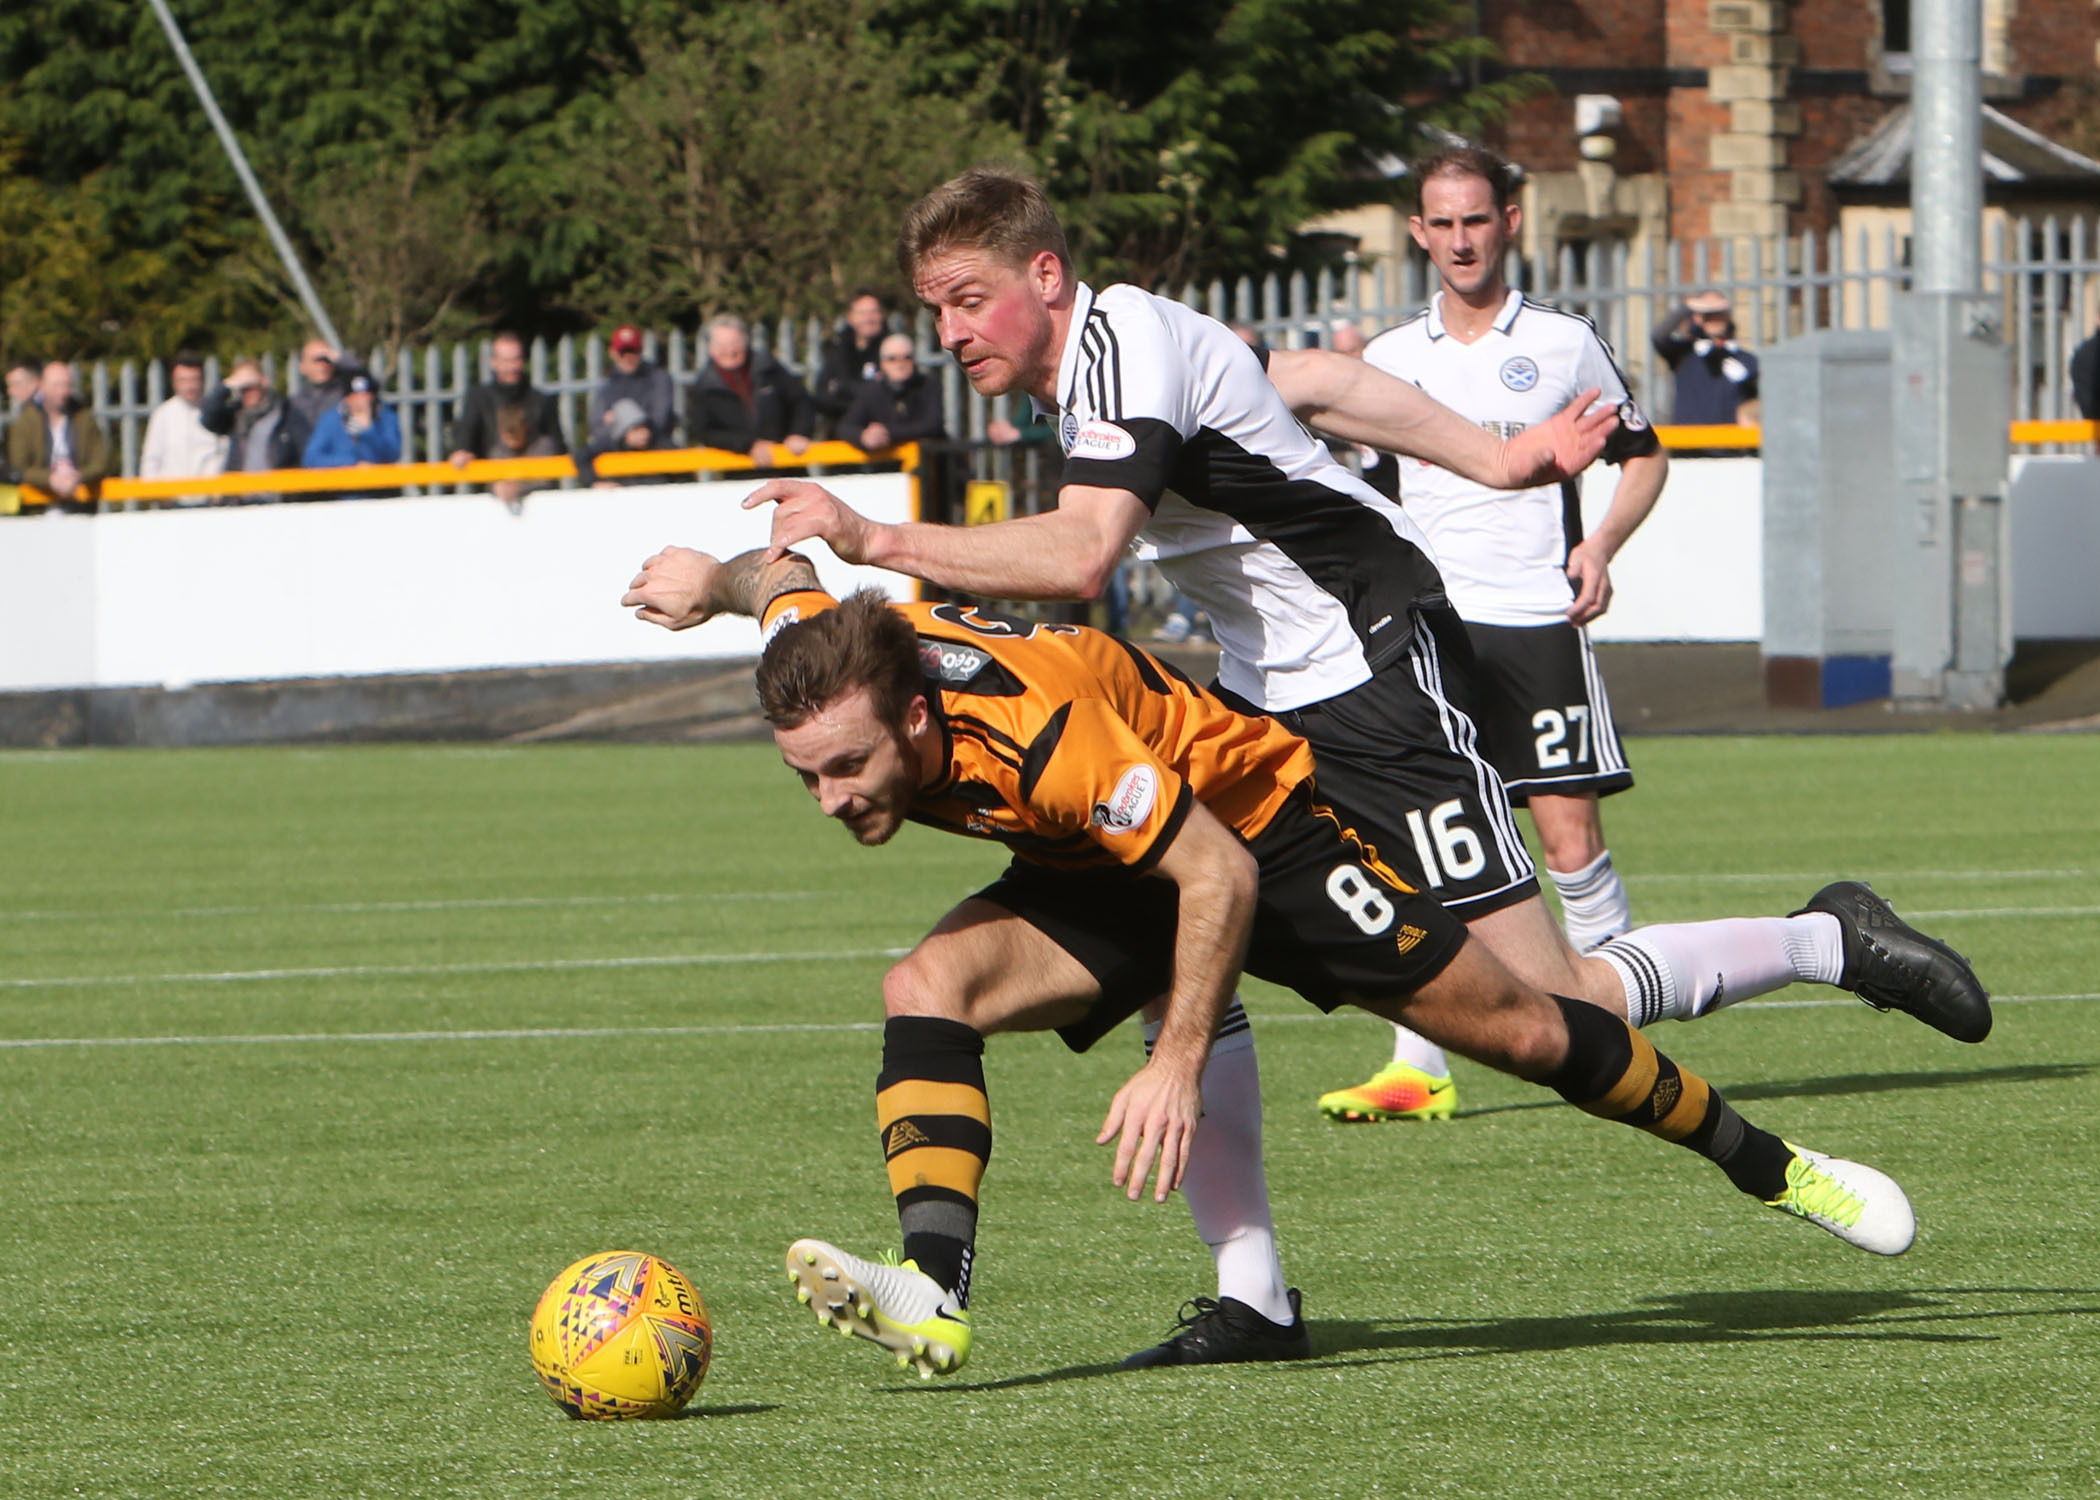 TESTING MATCH: United's Jamie Adams battles with Alloa's Steven Hetherington  in midfield.